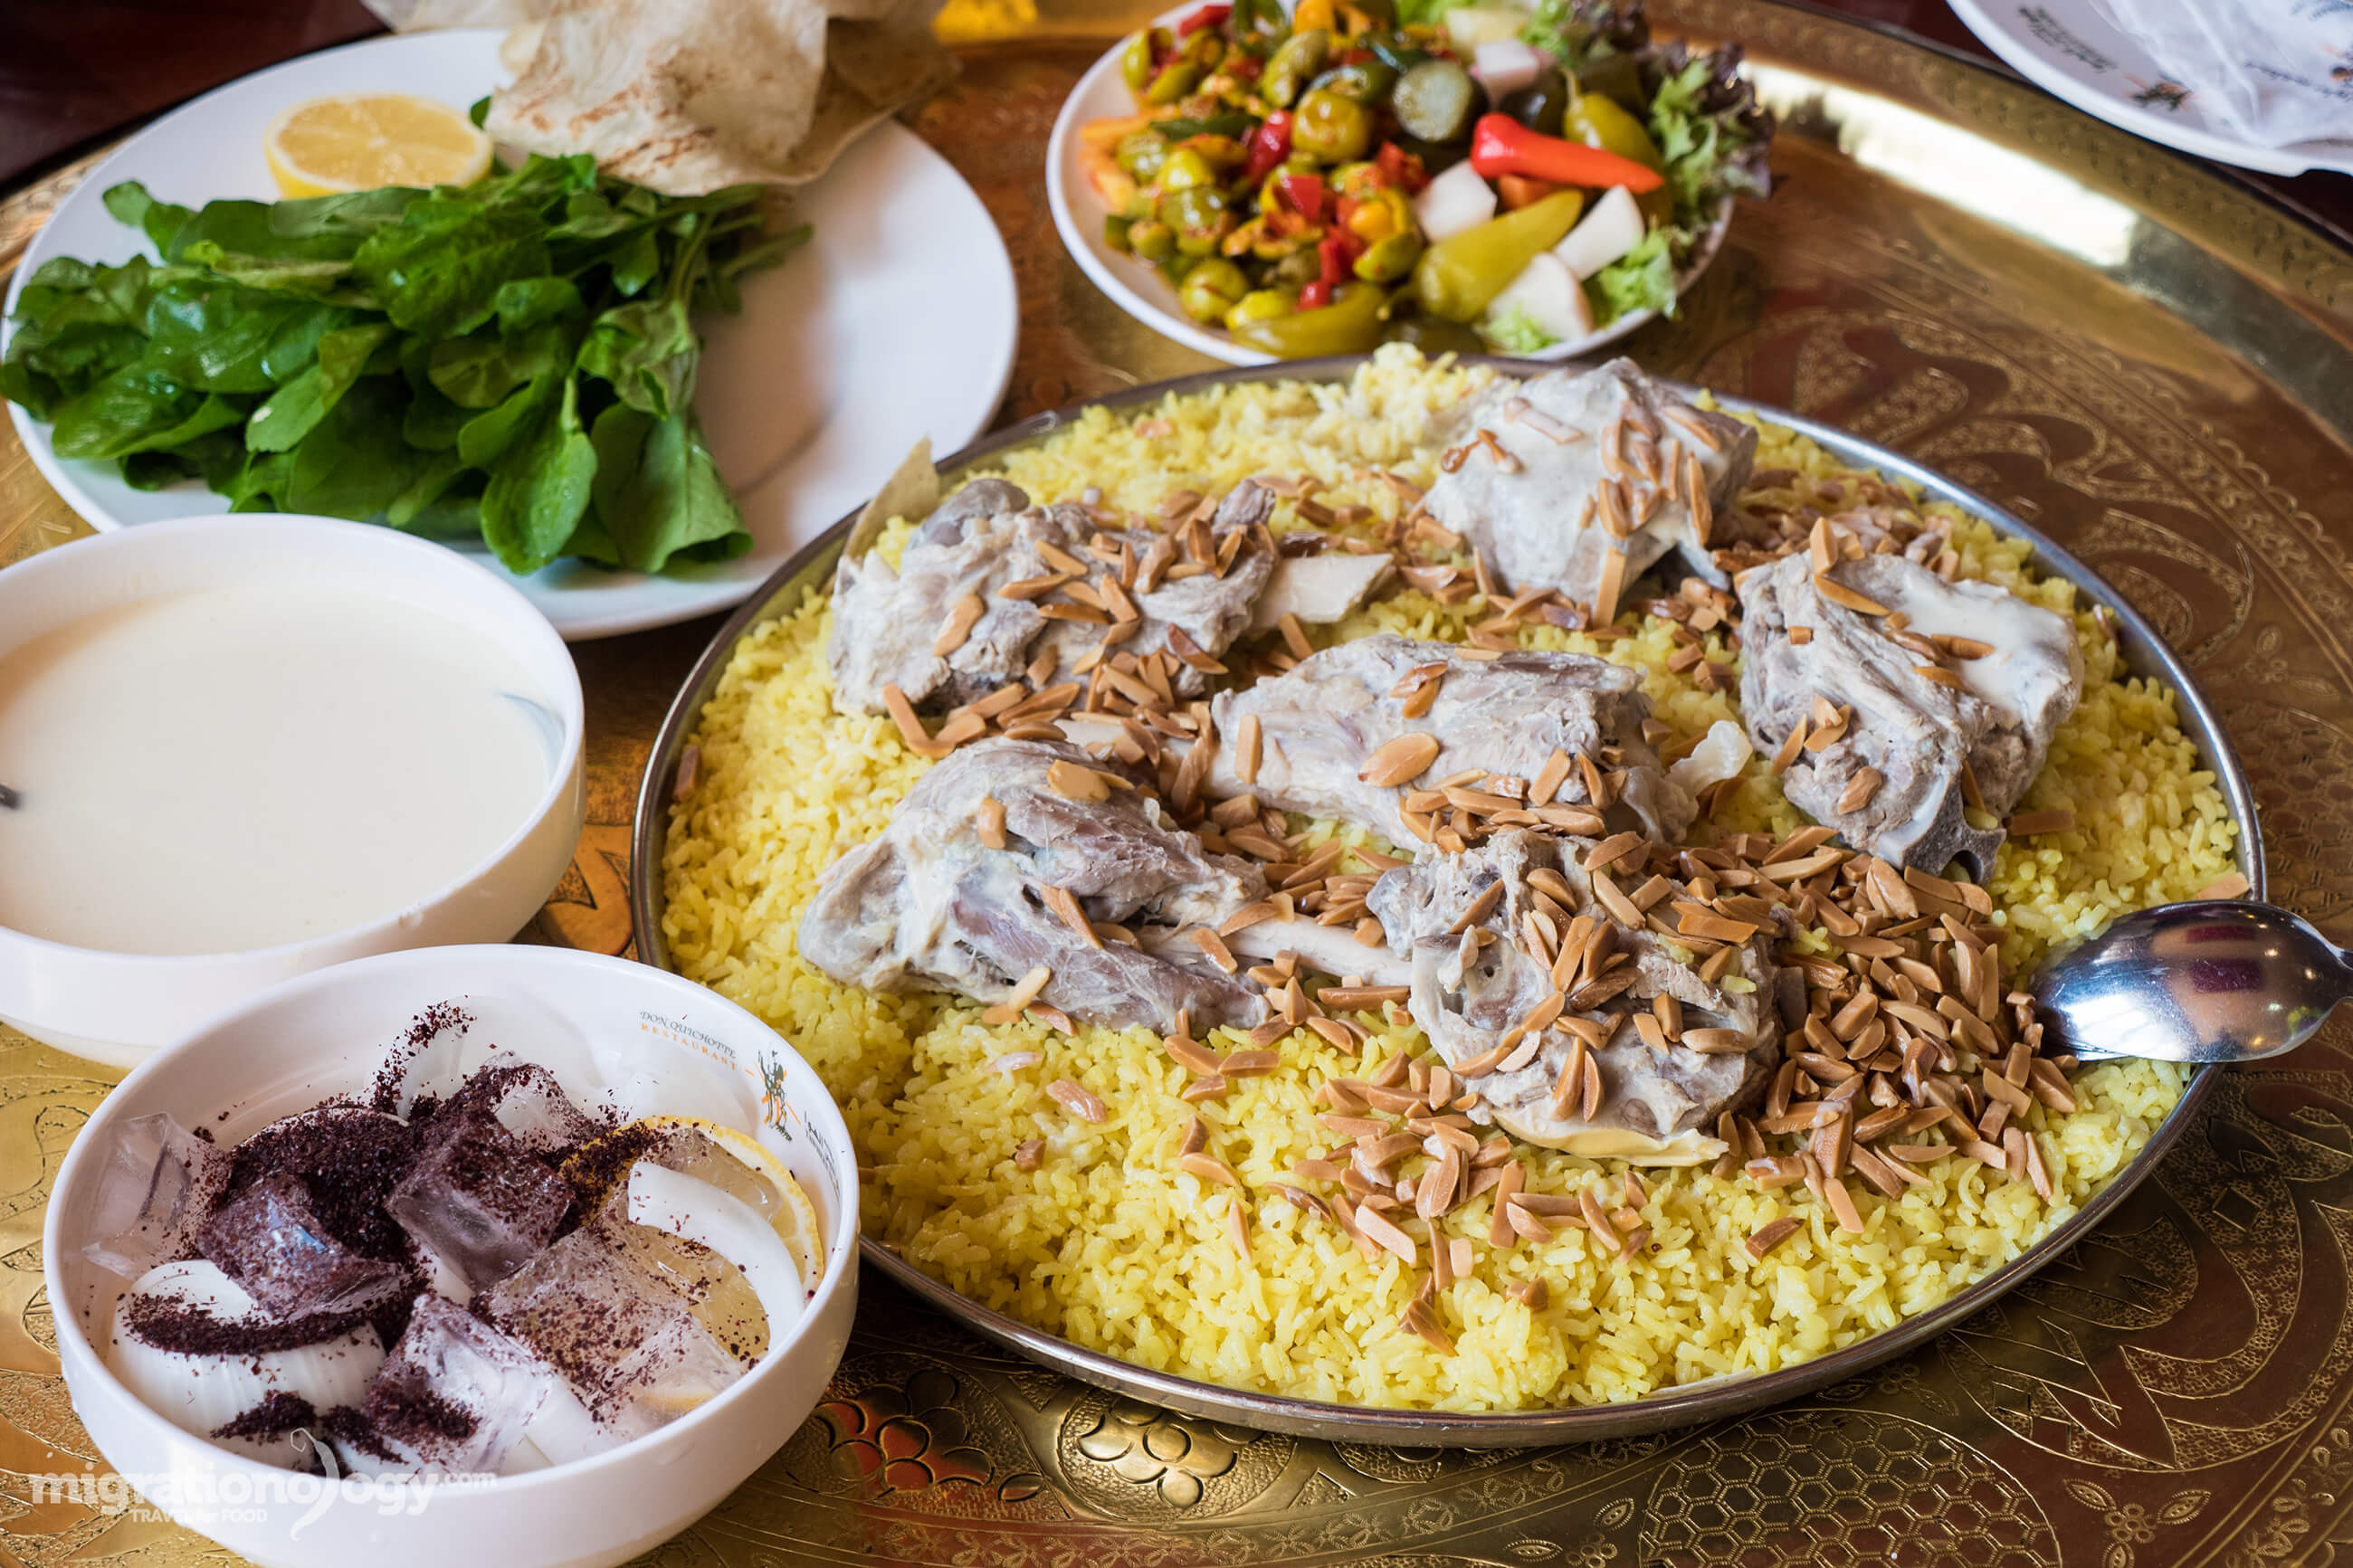 ian food of the best dishes you should eat mansaf the one dish you have to eat in